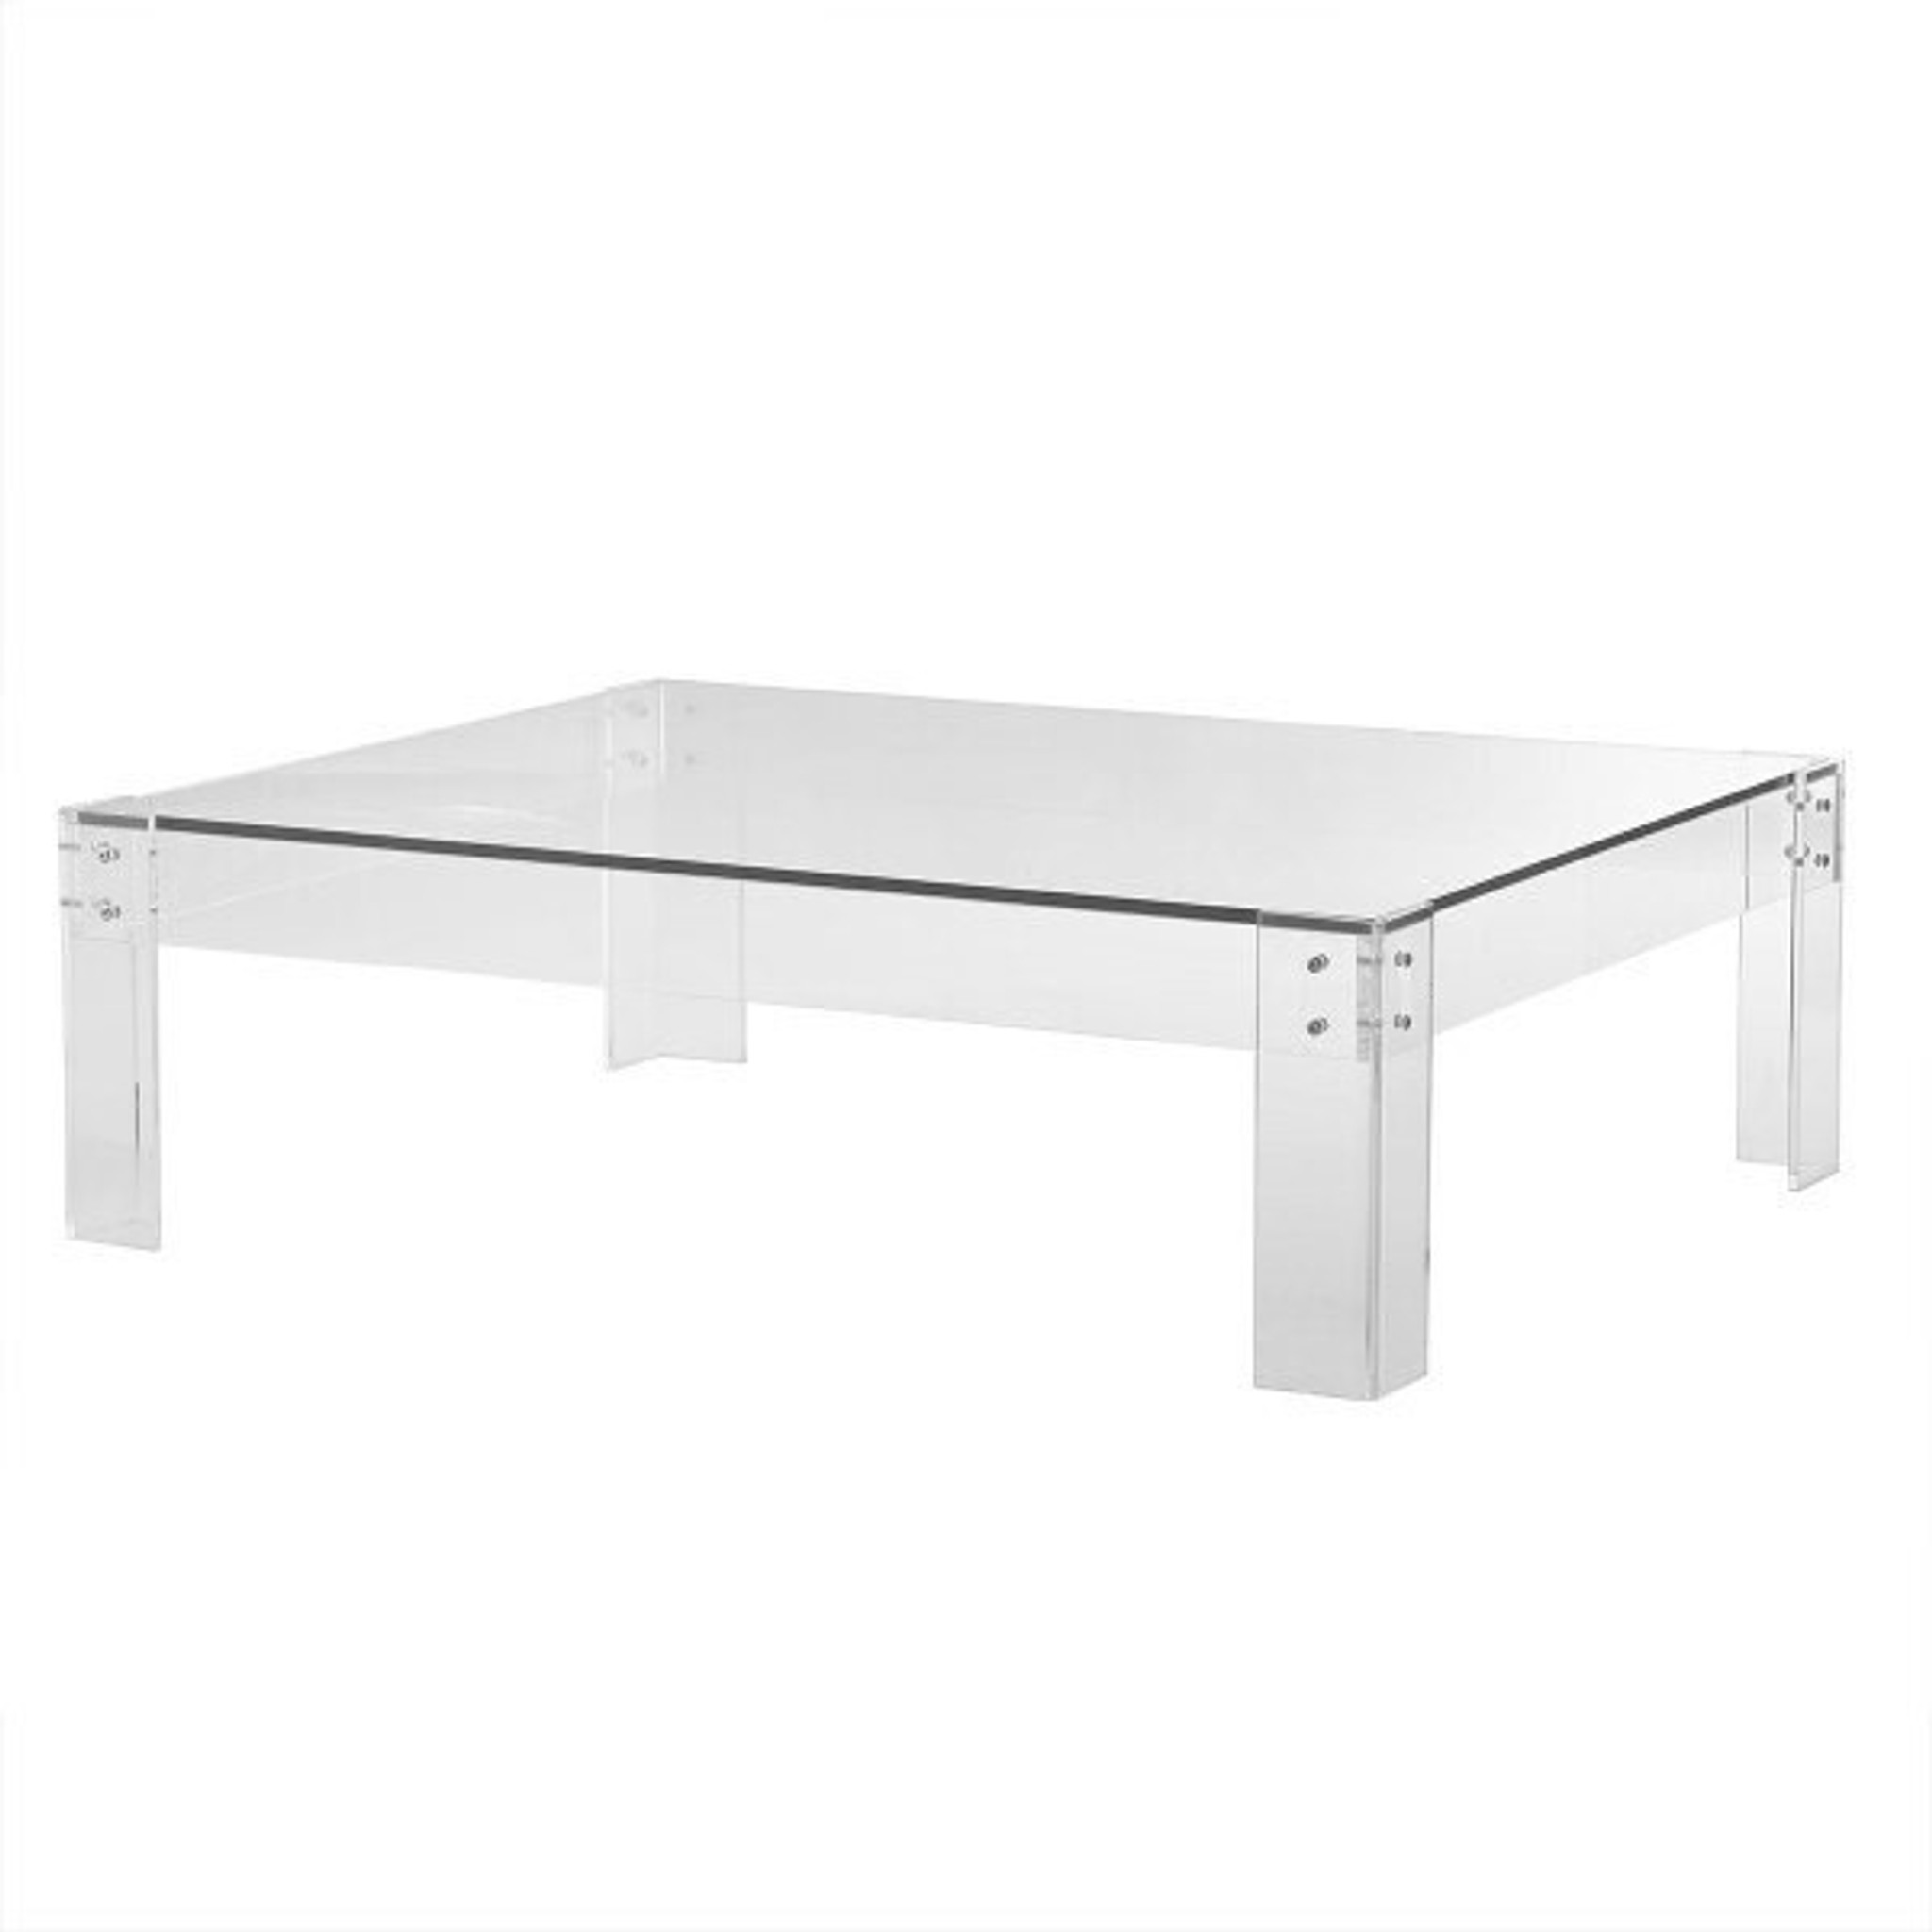 Clear Lucite Rectangular Coffee Table with Metal Bolts